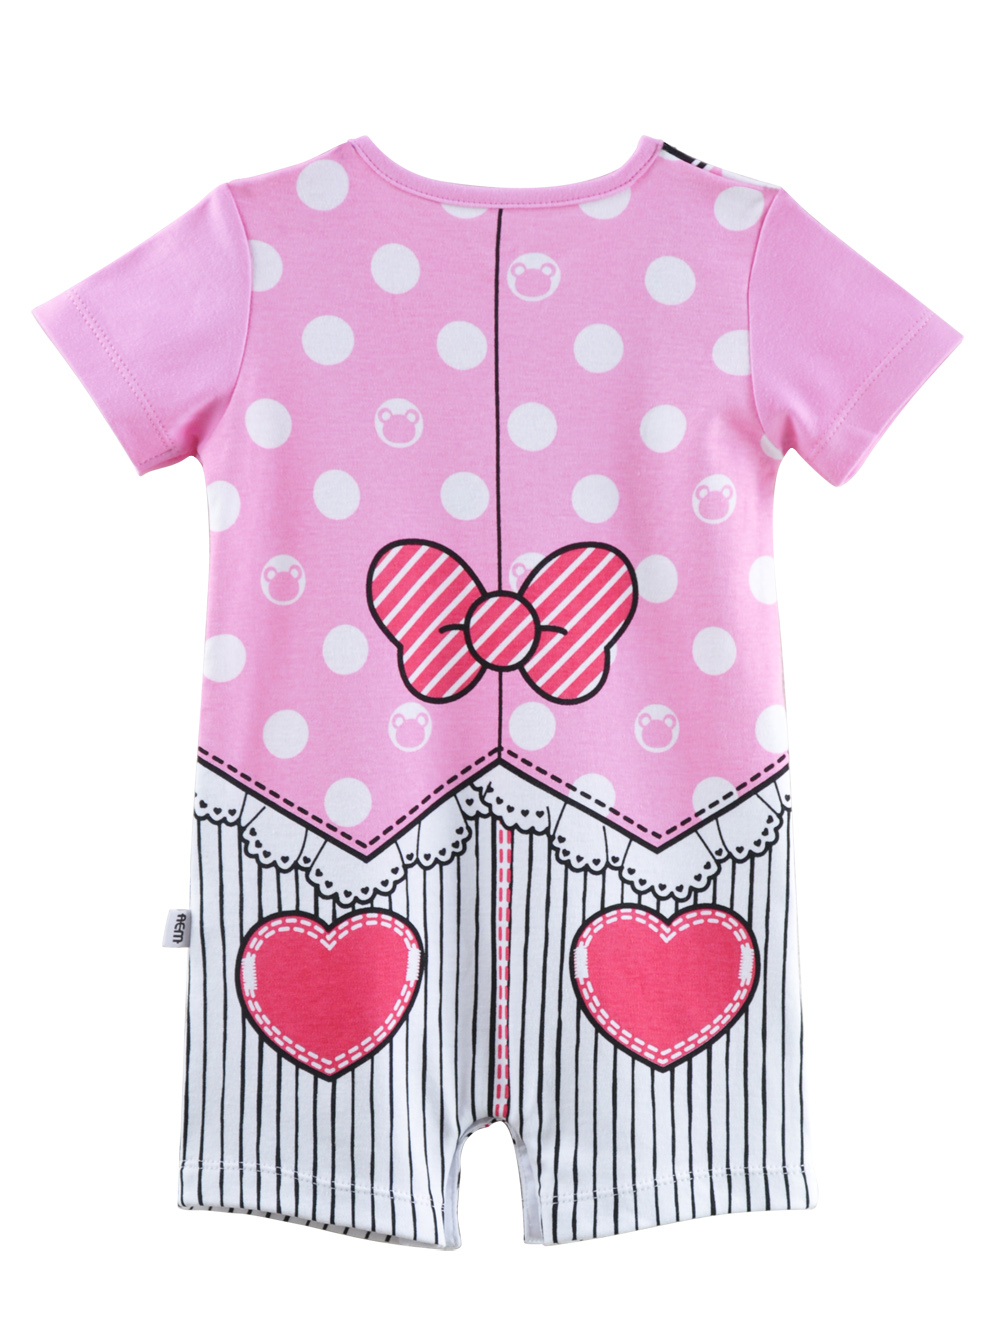 Personalise Your Own Baby/Kids Outfits by Choosing your Name, Colour, Outfit Type and Design. FREE Custom Design Services available. High Quality Cotton/Elastane Material, Fast Shipping, % Satisfaction Guaranteed.